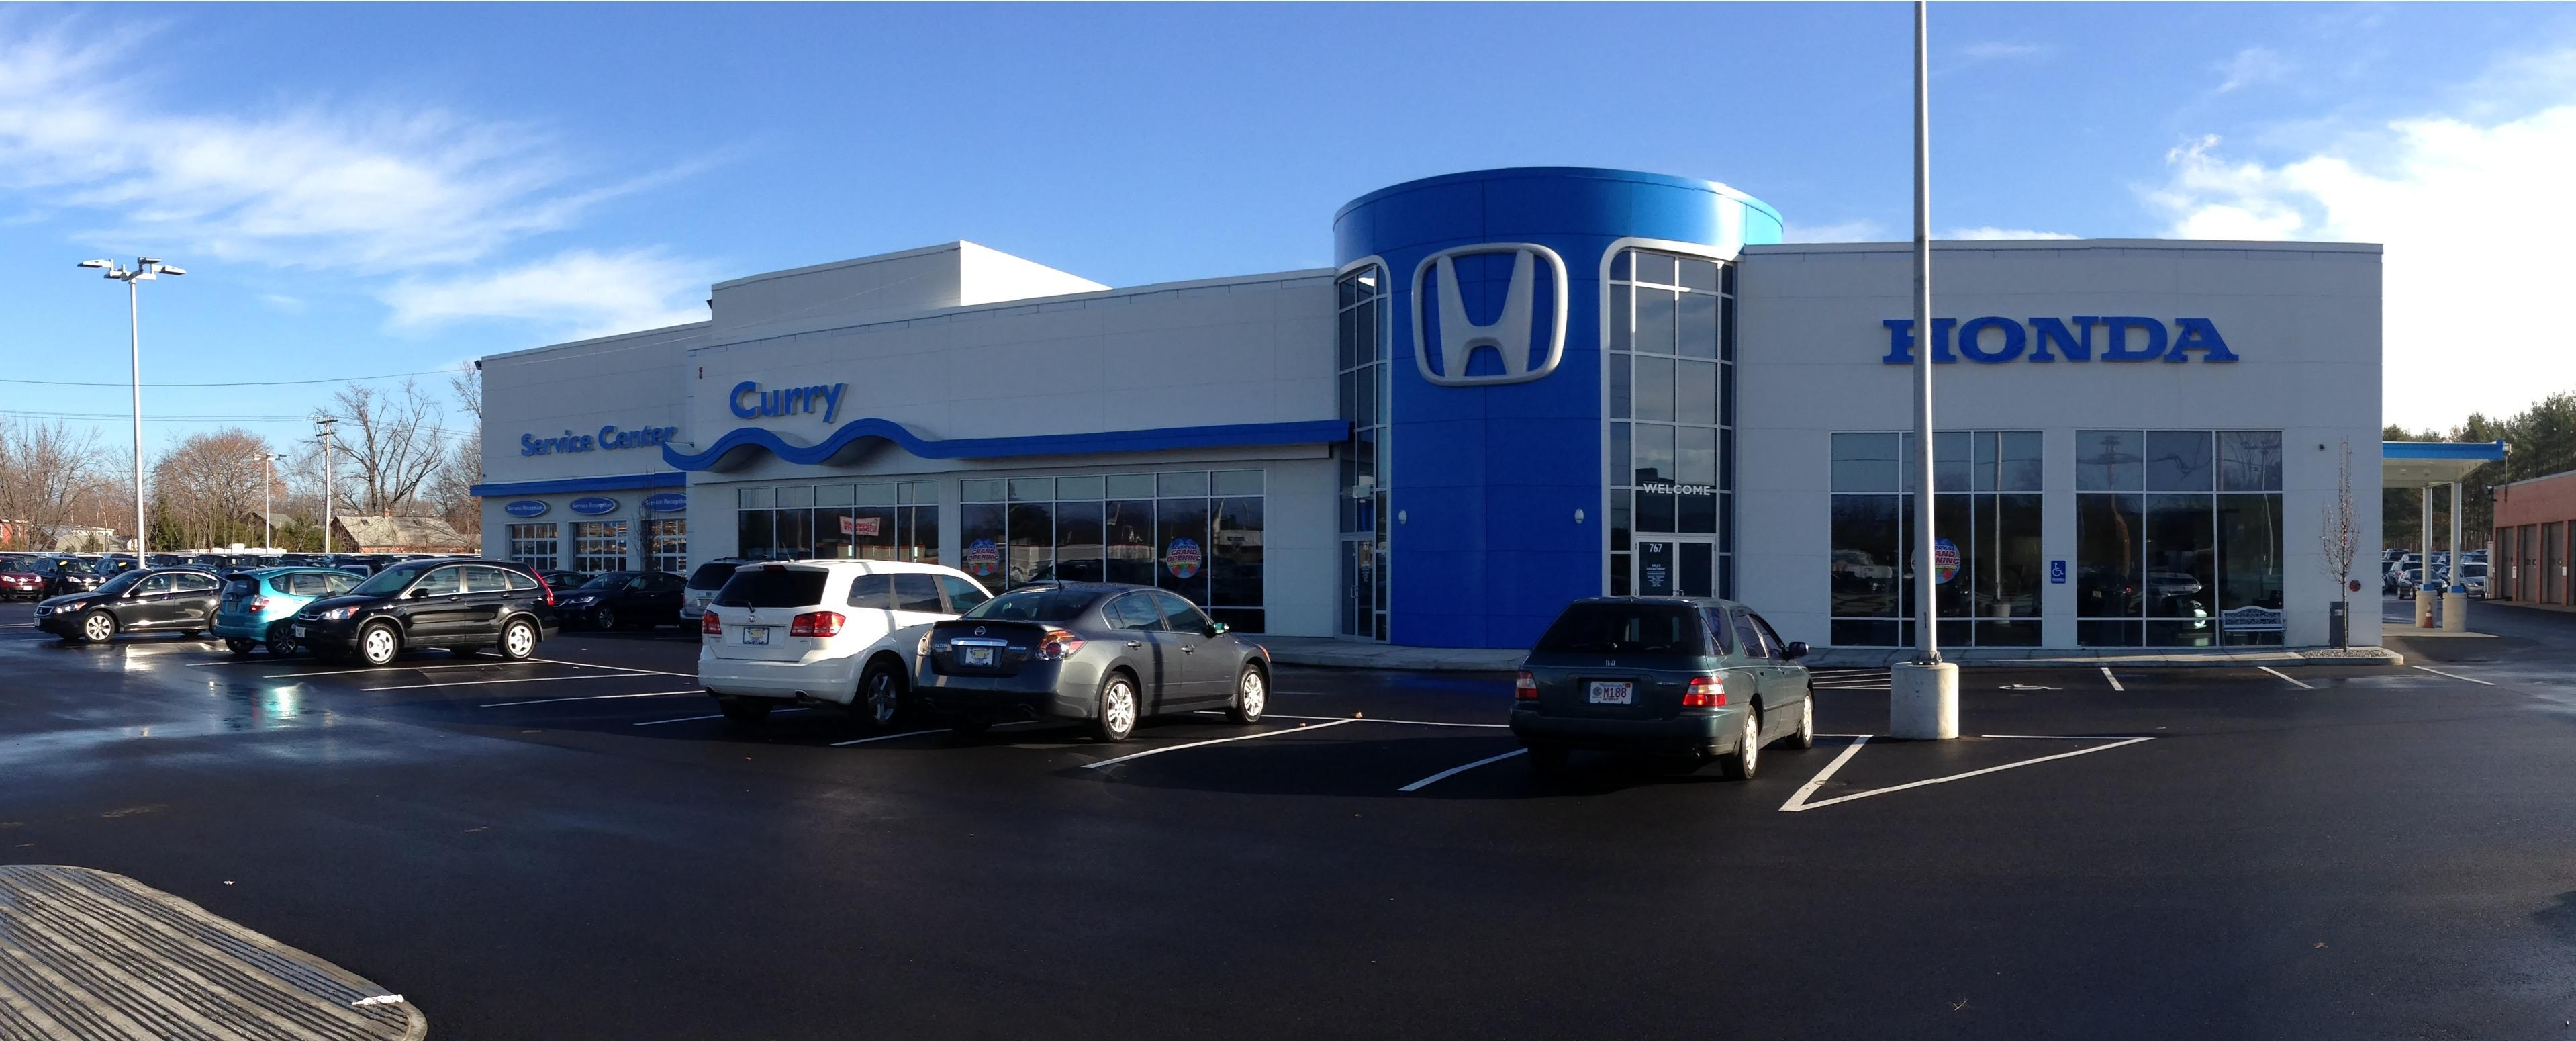 curry honda chicopee in chicopee ma auto dealers yellow pages directory inc. Black Bedroom Furniture Sets. Home Design Ideas